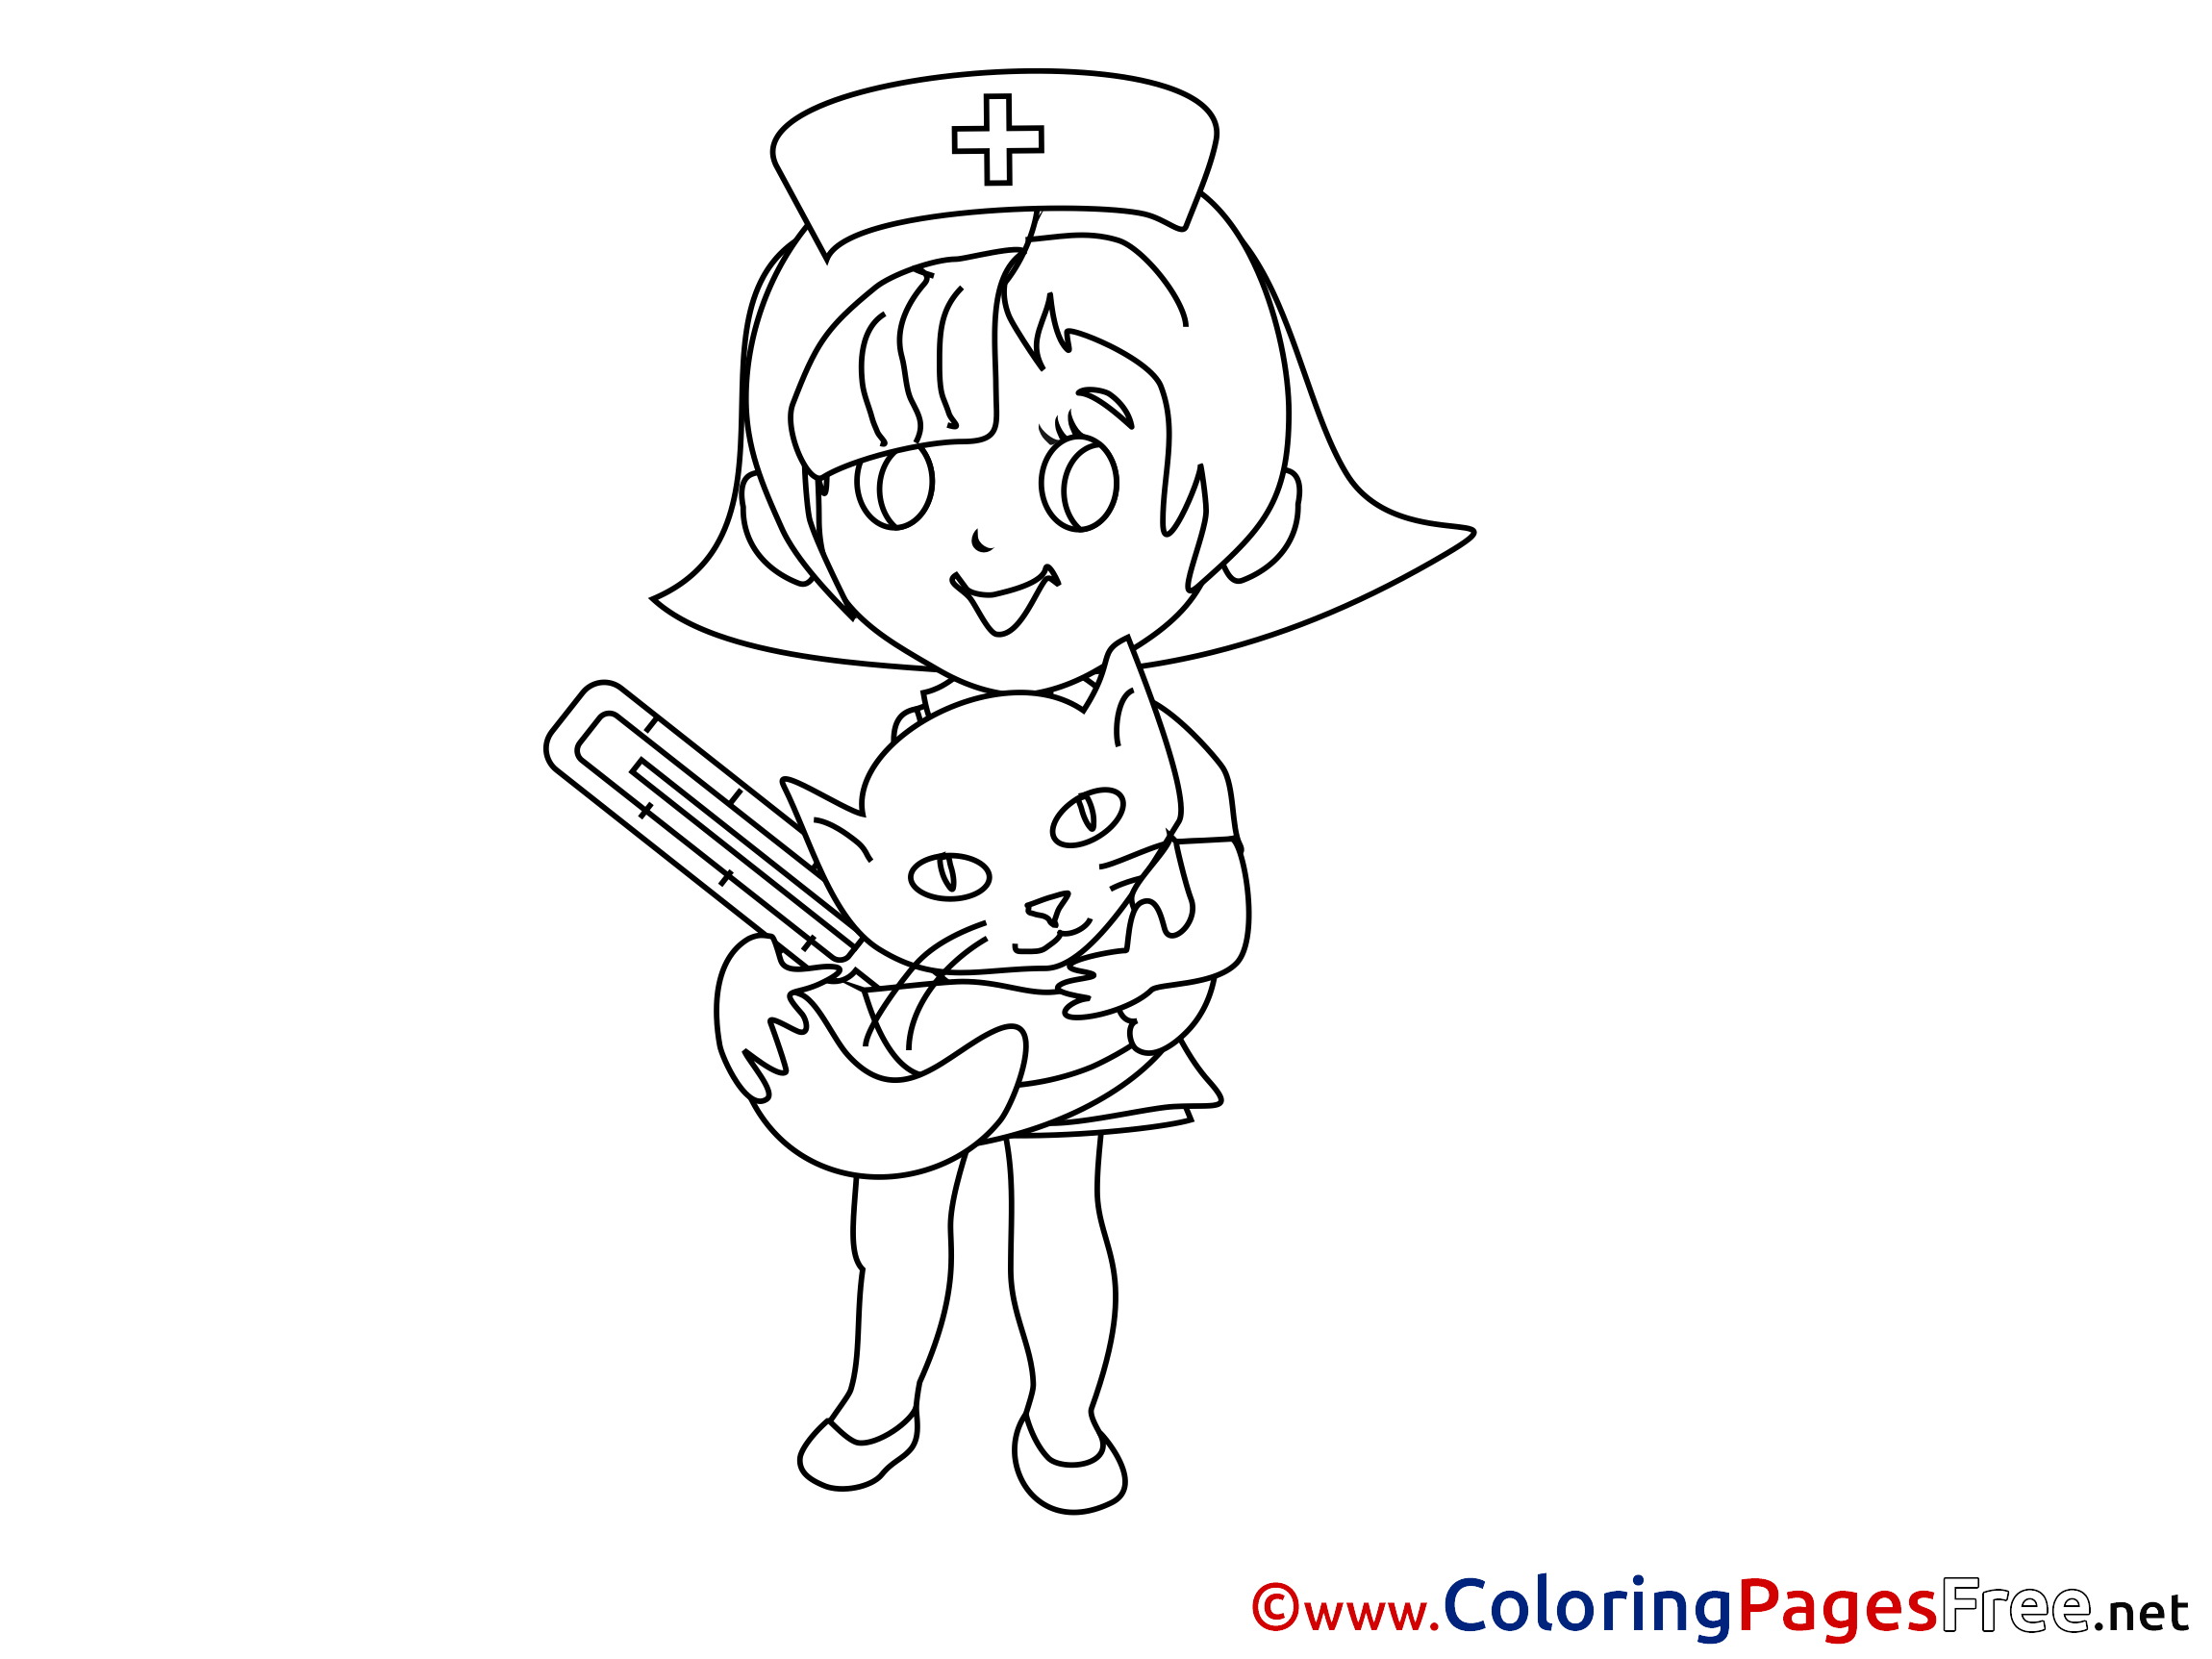 Free printable coloring pages veterinarians - Free Printable Coloring Pages Veterinarians 4